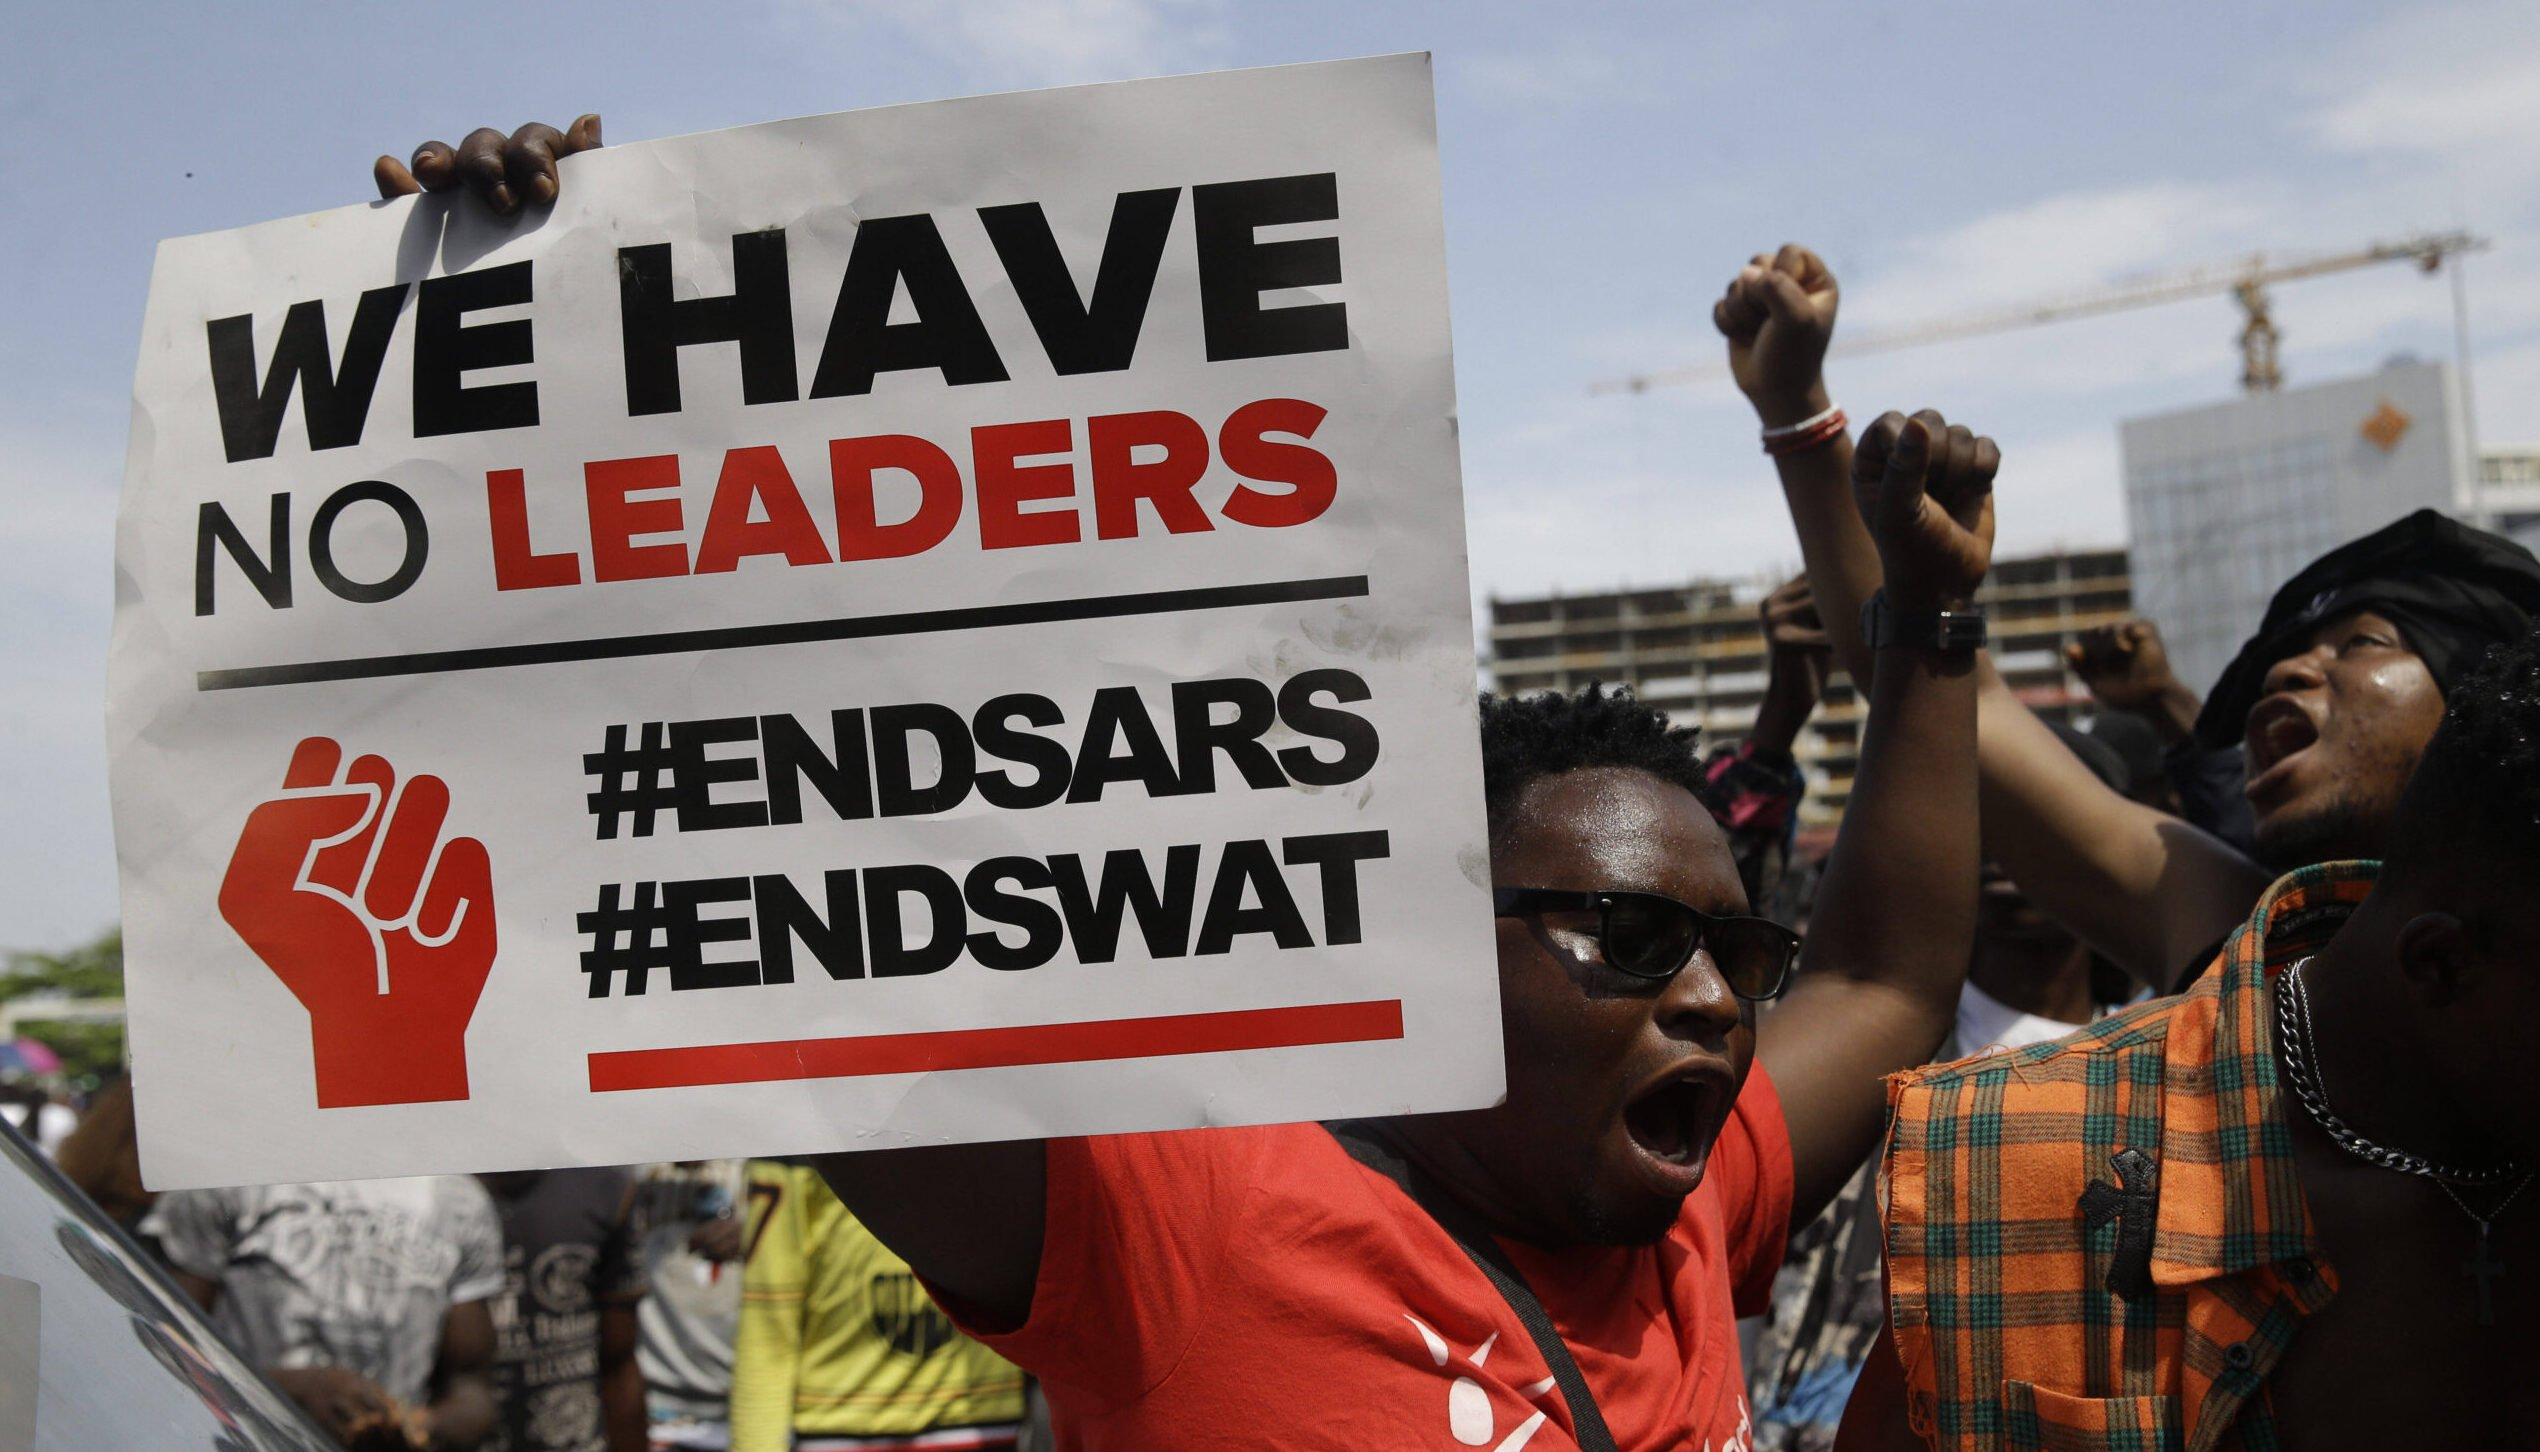 Nigeria: #EndSARS movement avoids pitfalls of 'leadership'